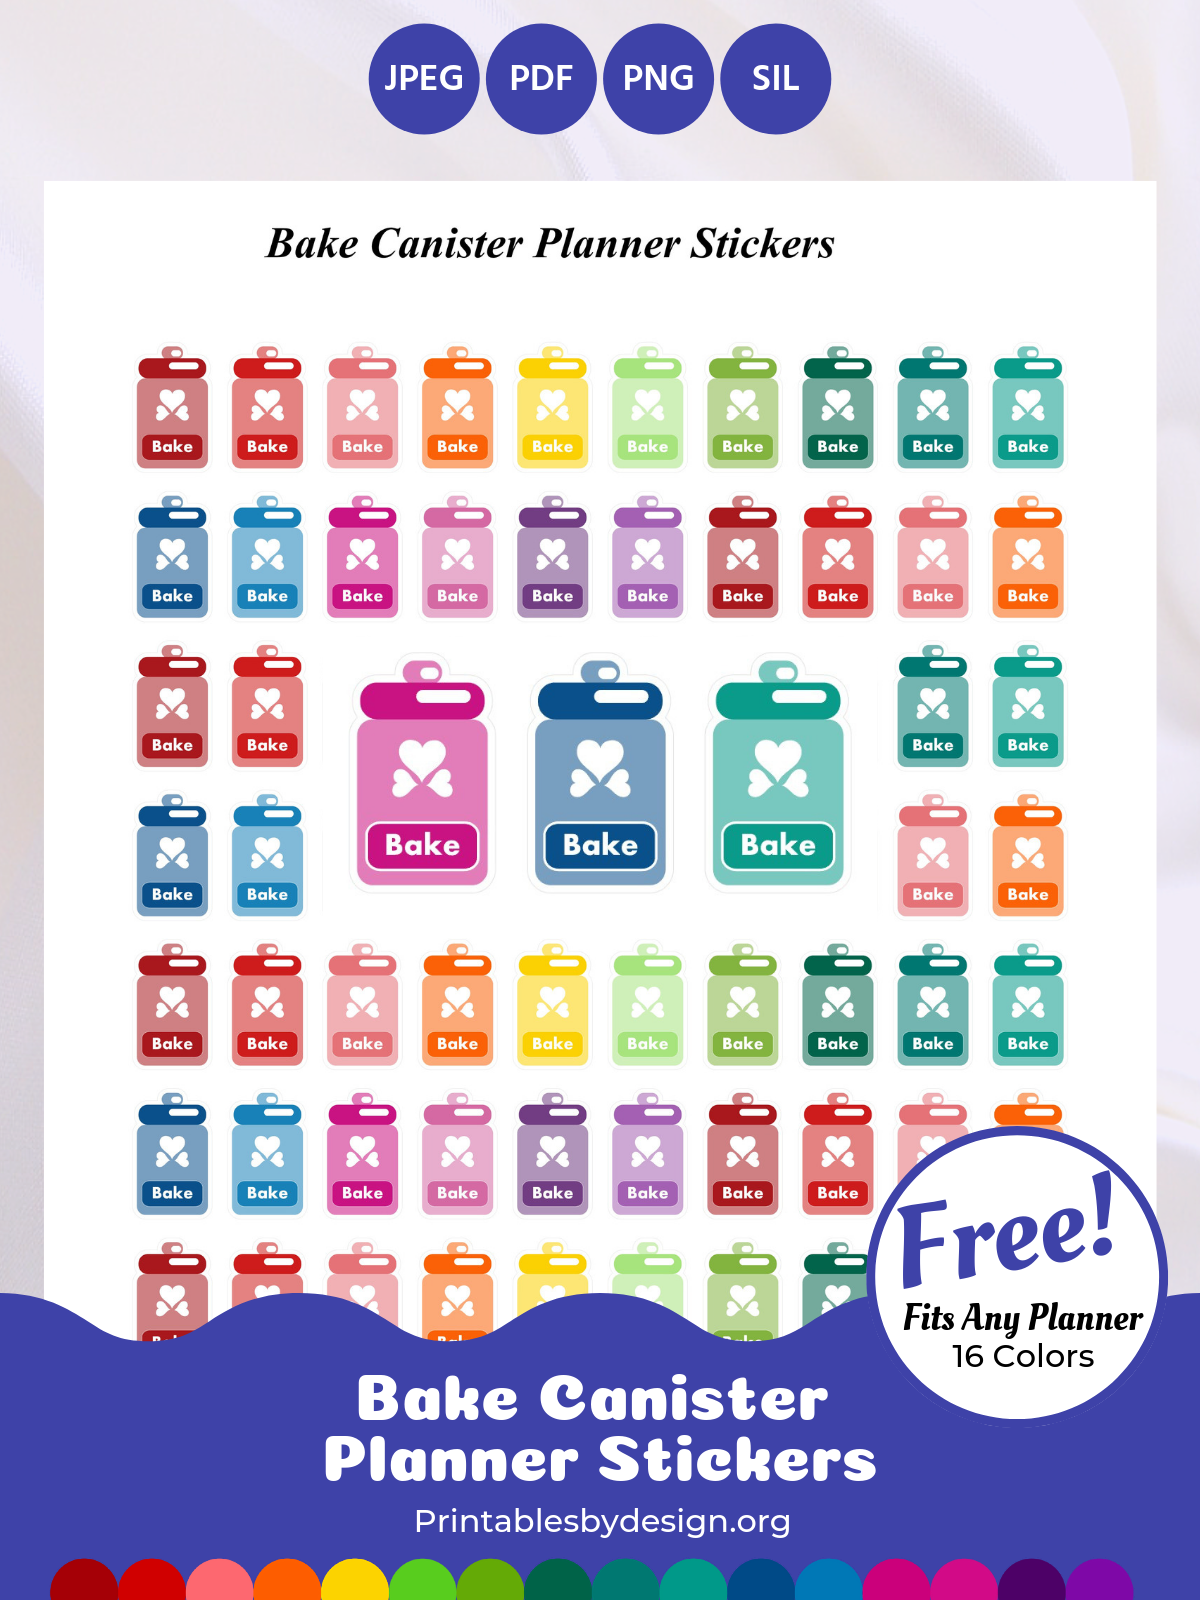 Download Icon Functional Stickers Printables By Design